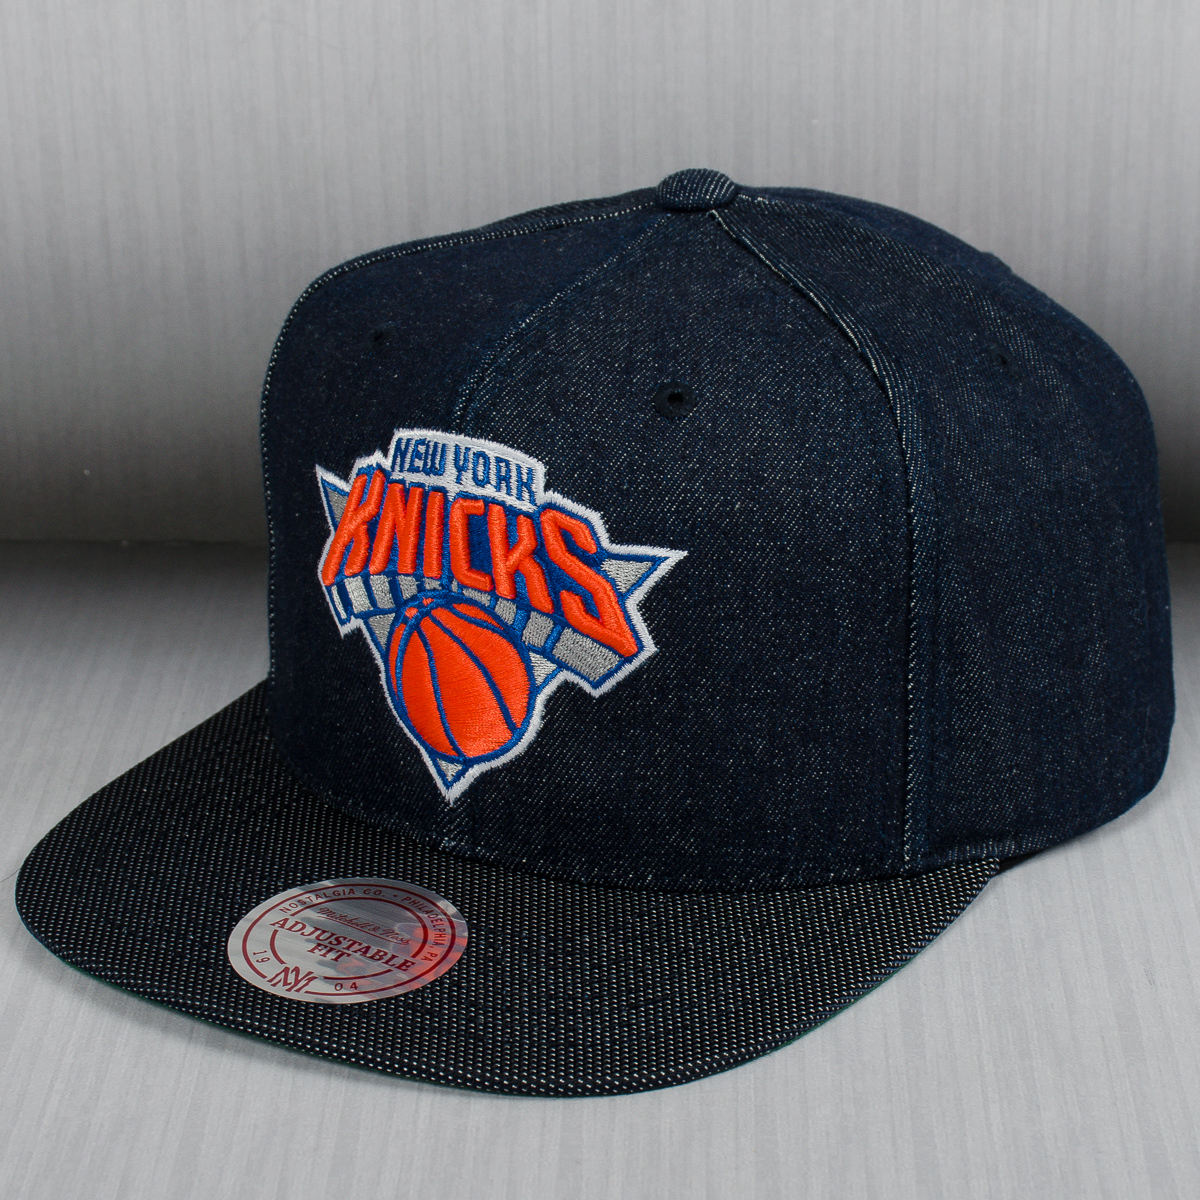 ee396da097b ... discount code for mitchell ness nba new york knicks raw denim snapback  cap 3bac4 1e107